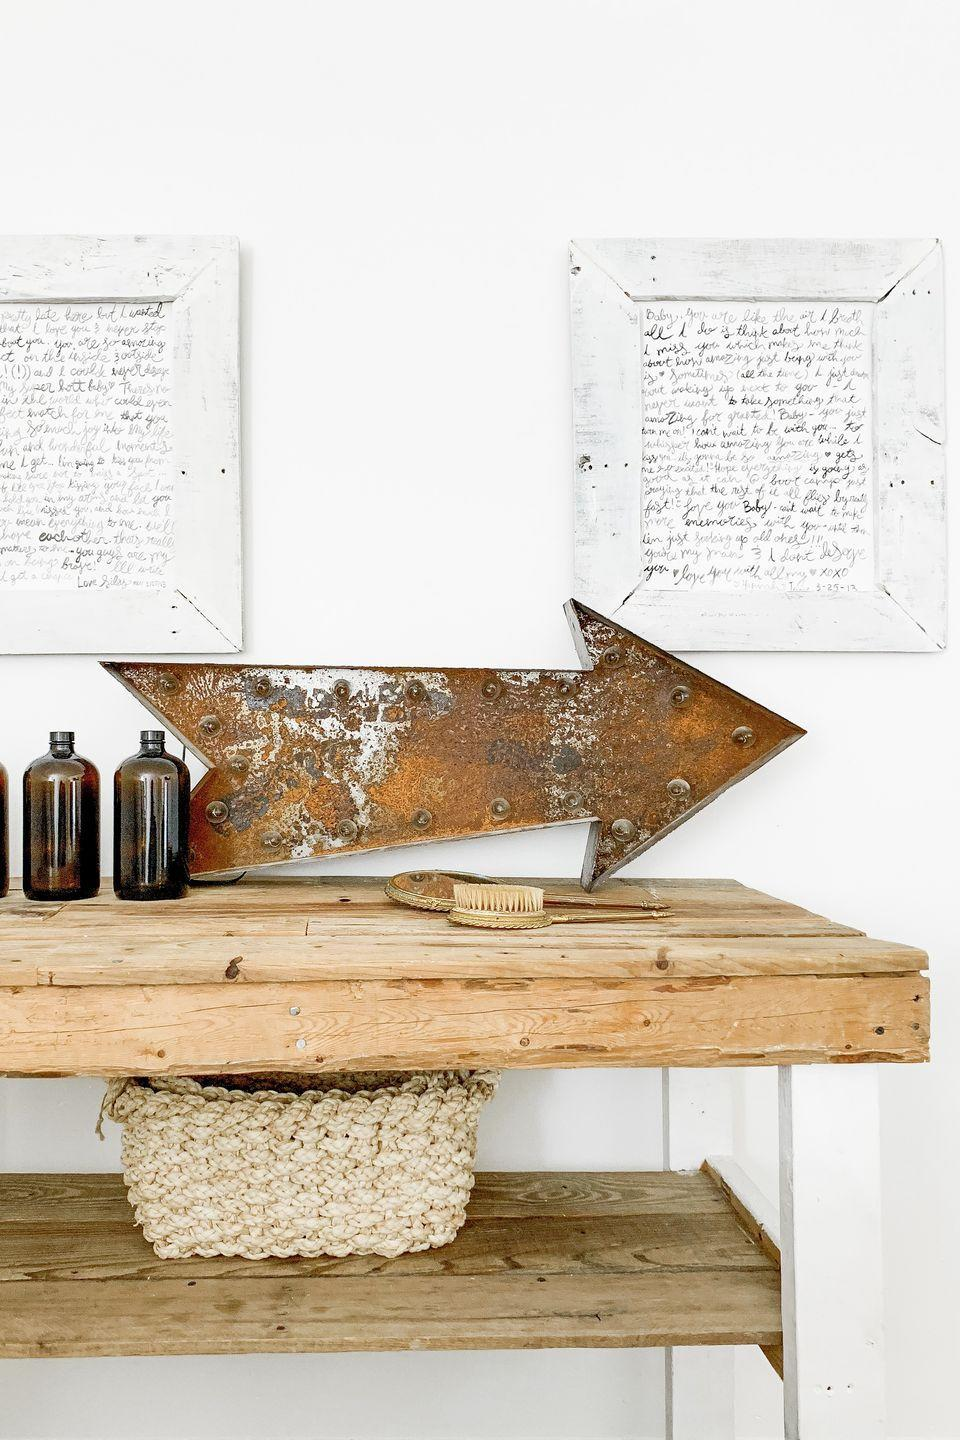 """<p>Turn a treasured love letter into a work of art that you can display year-round—but especially on Valentine's Day. An arrow that nods to Cupid is just a plus.</p><p><strong>Get the tutorial at <a href=""""https://welivedhappilyeverafter.com/diy-boot-camp-love-letter-artwork/"""" rel=""""nofollow noopener"""" target=""""_blank"""" data-ylk=""""slk:We Lived Happily Ever After"""" class=""""link rapid-noclick-resp"""">We Lived Happily Ever After</a>.</strong></p><p><strong><strong><a class=""""link rapid-noclick-resp"""" href=""""https://www.amazon.com/boards-canvas/b?ie=UTF8&node=12896211&tag=syn-yahoo-20&ascsubtag=%5Bartid%7C10050.g.2971%5Bsrc%7Cyahoo-us"""" rel=""""nofollow noopener"""" target=""""_blank"""" data-ylk=""""slk:SHOP CANVASES"""">SHOP CANVASES</a></strong><br></strong></p>"""